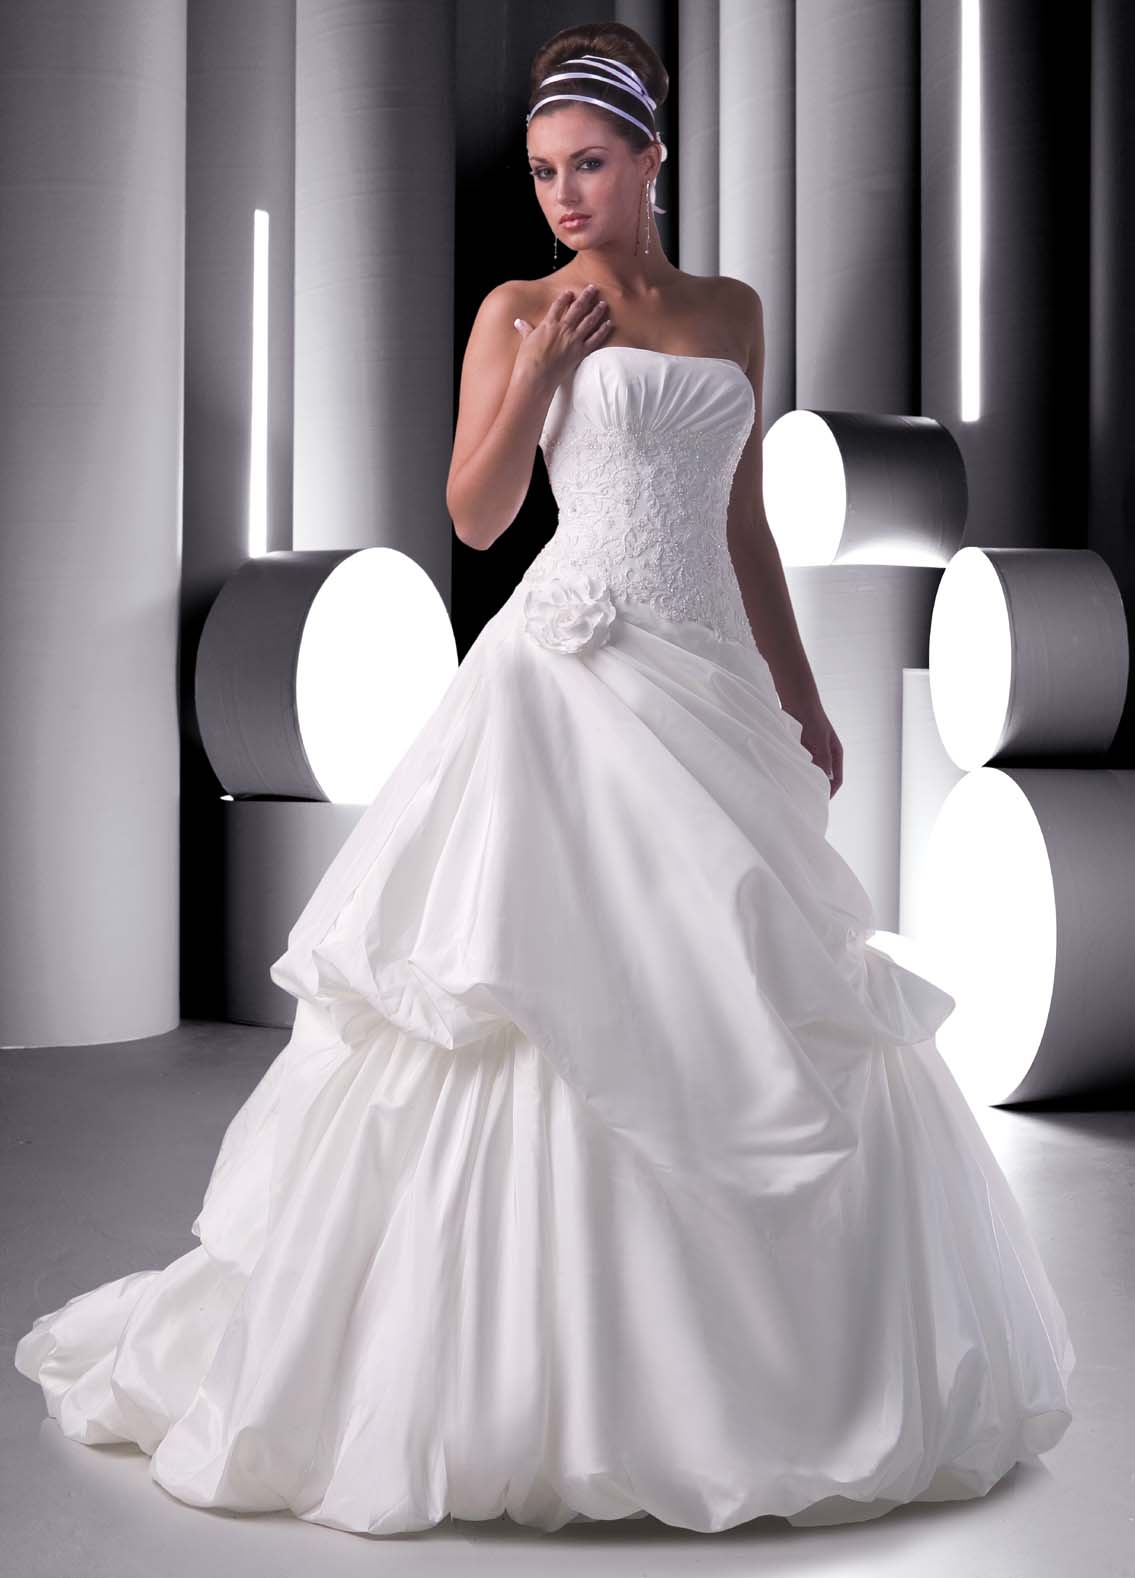 Bridal dresses wedding dress styles for Wedding dress pick up style